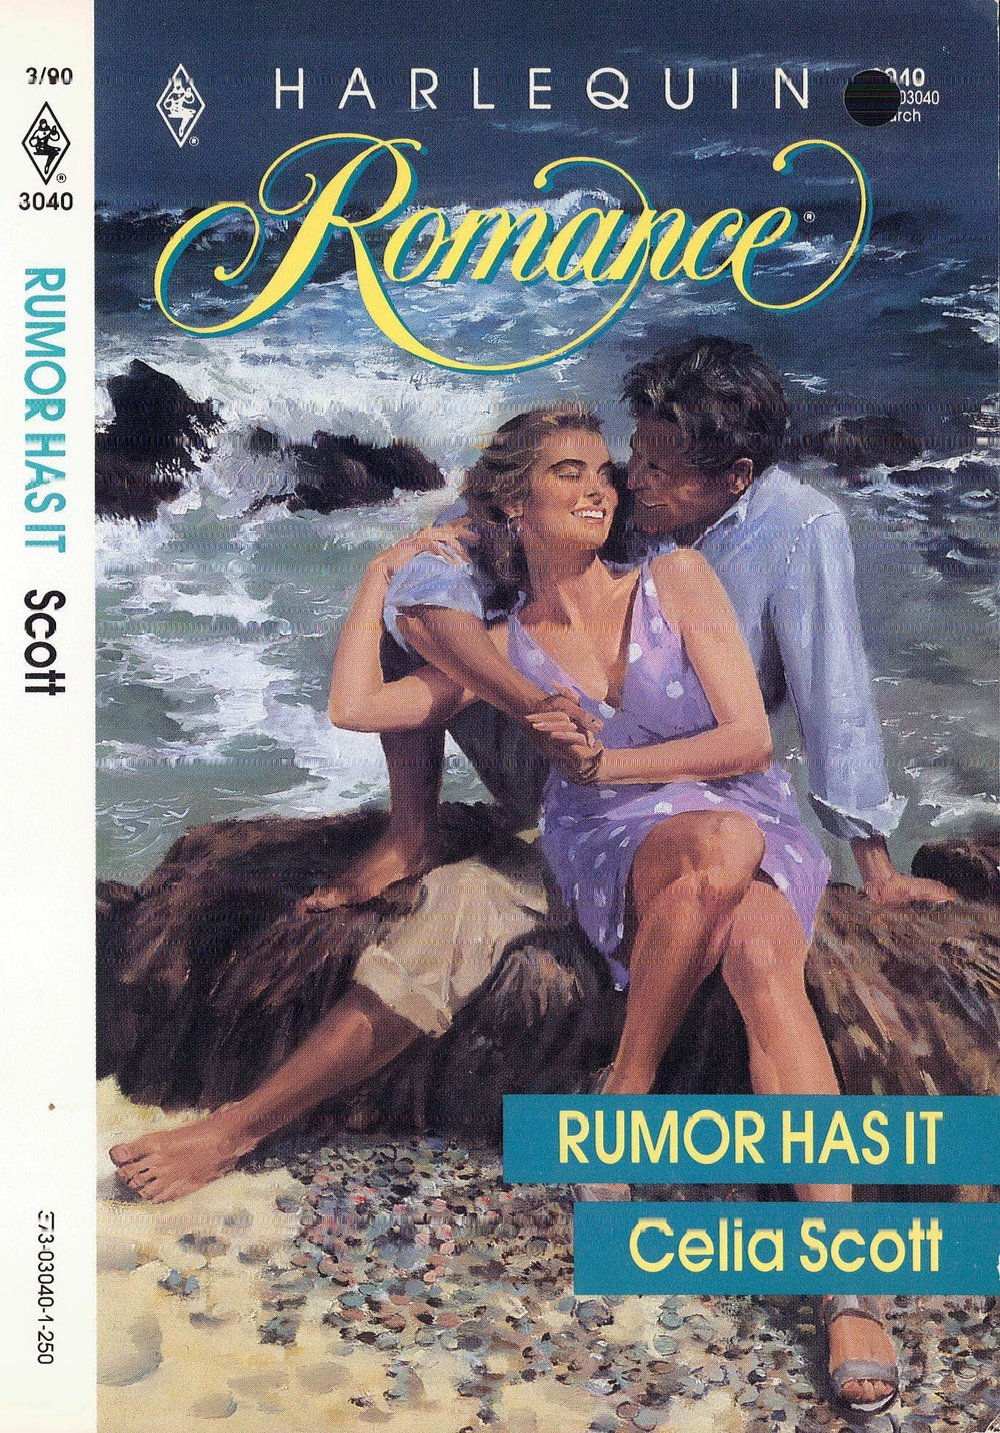 Rumor Has It by Celia Scott, as it appeared to the reader.